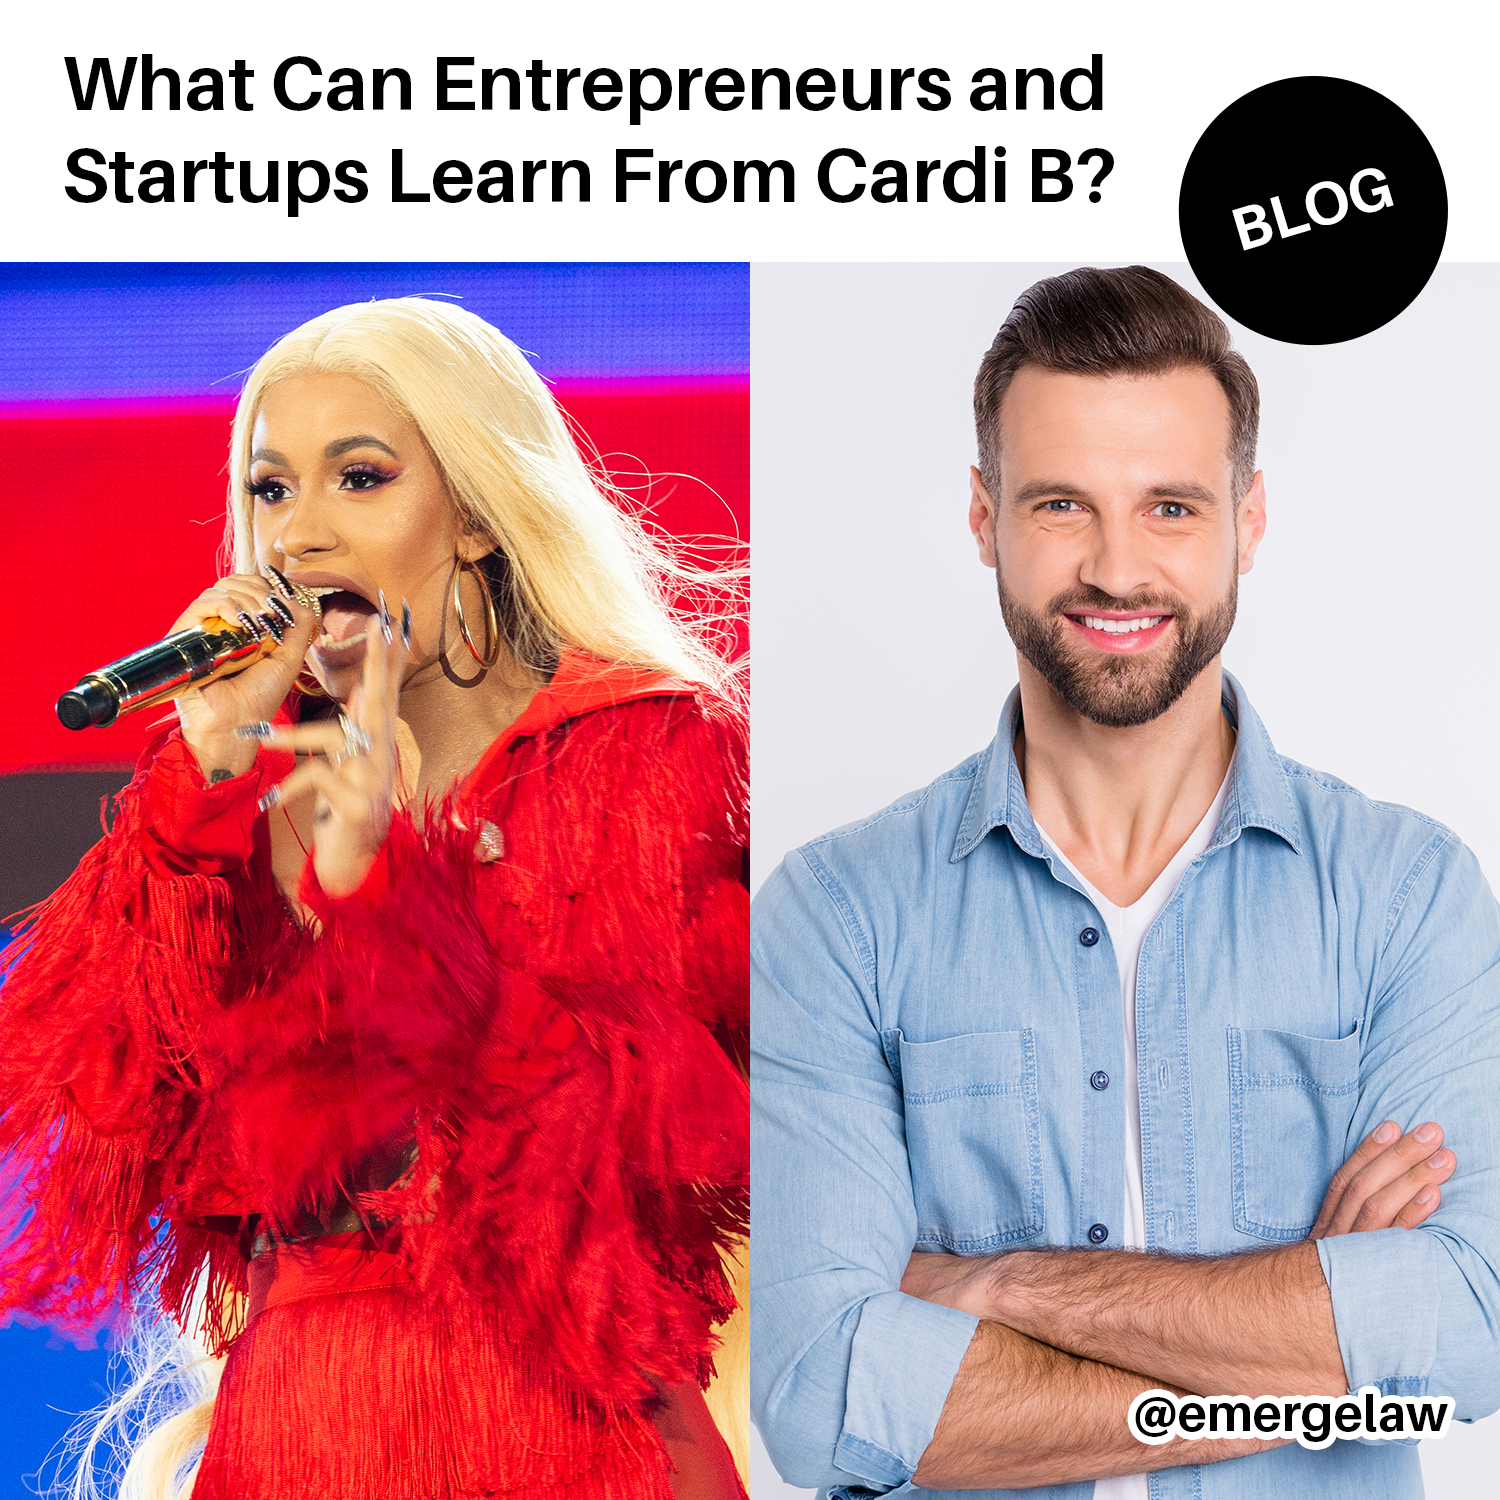 What Can Entrepreneurs and Startups Learn From Cardi B